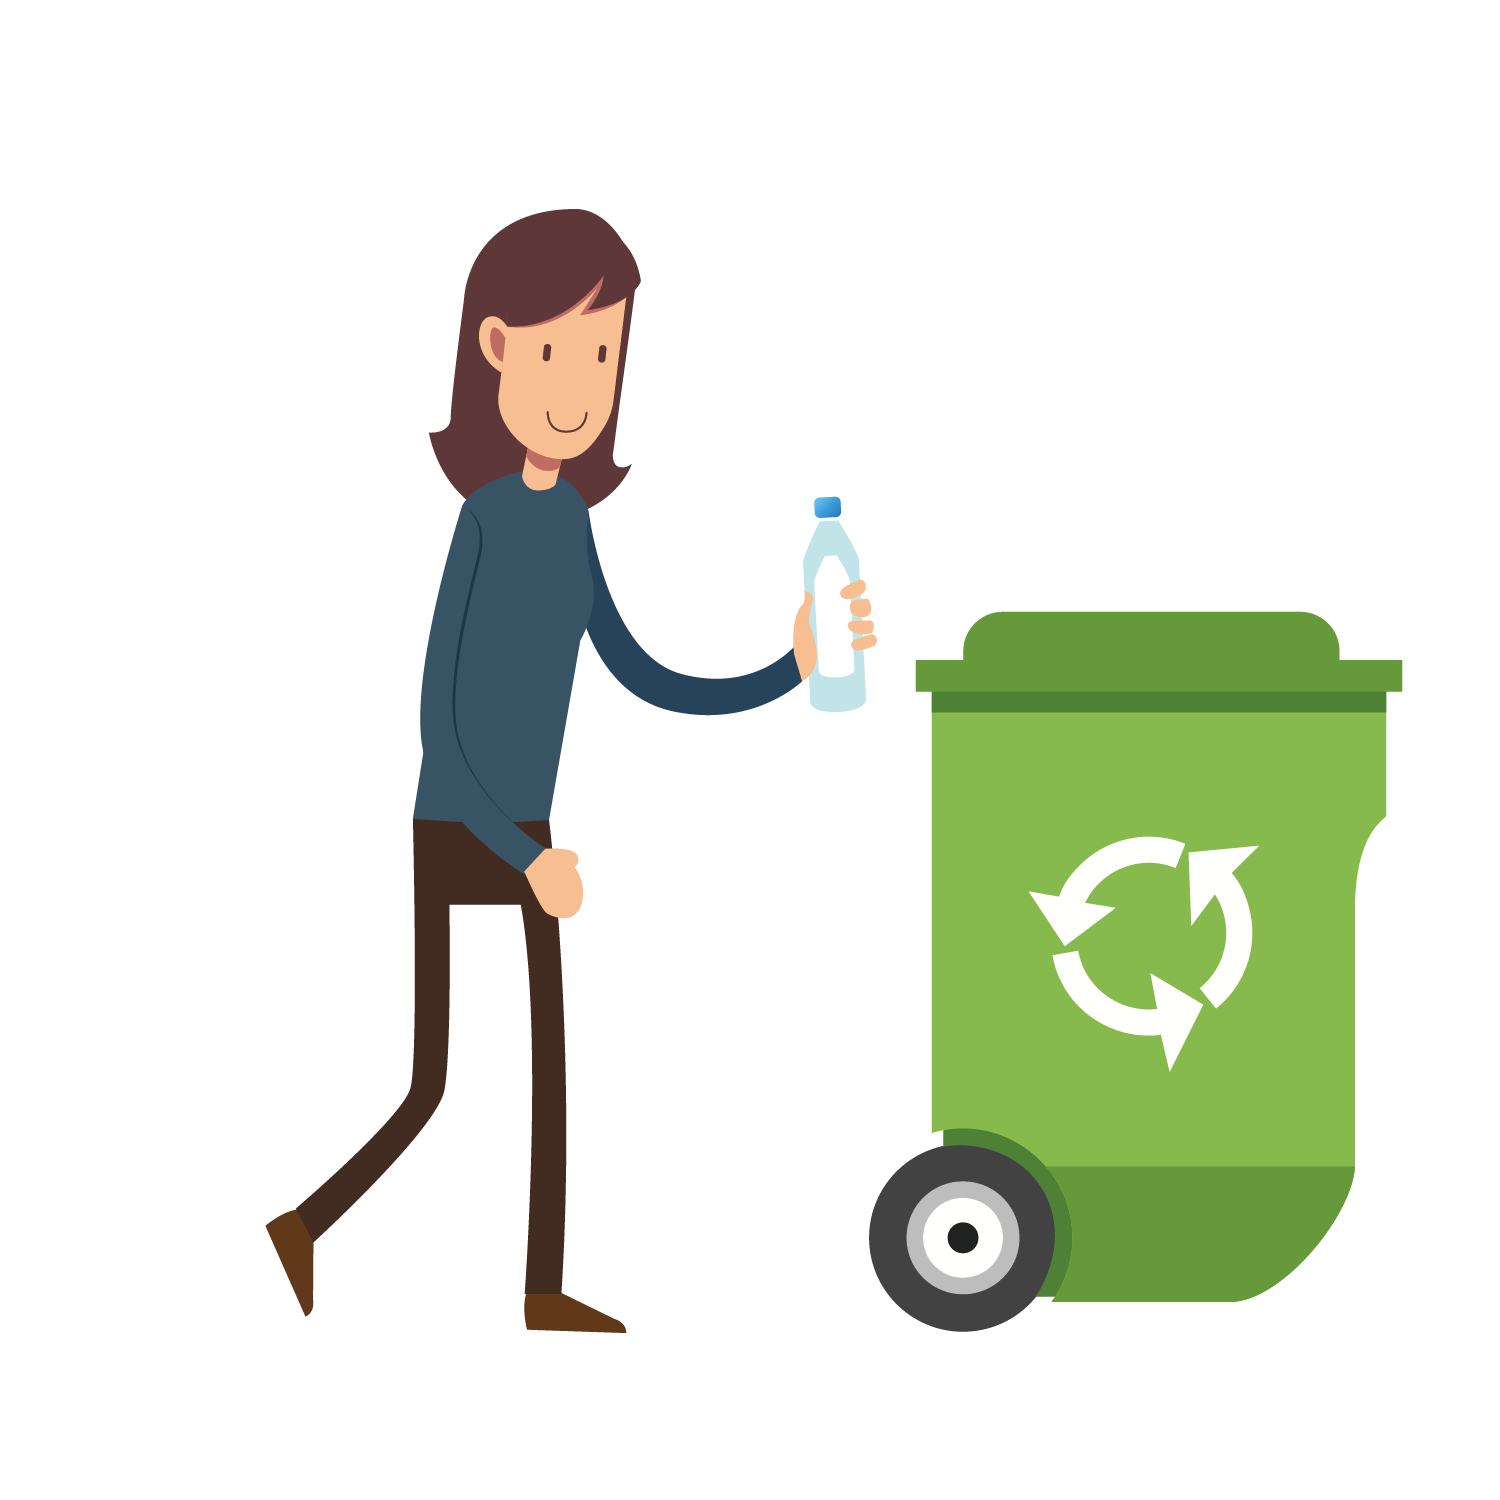 Container recycling throwing rubbish. Human clipart human waste